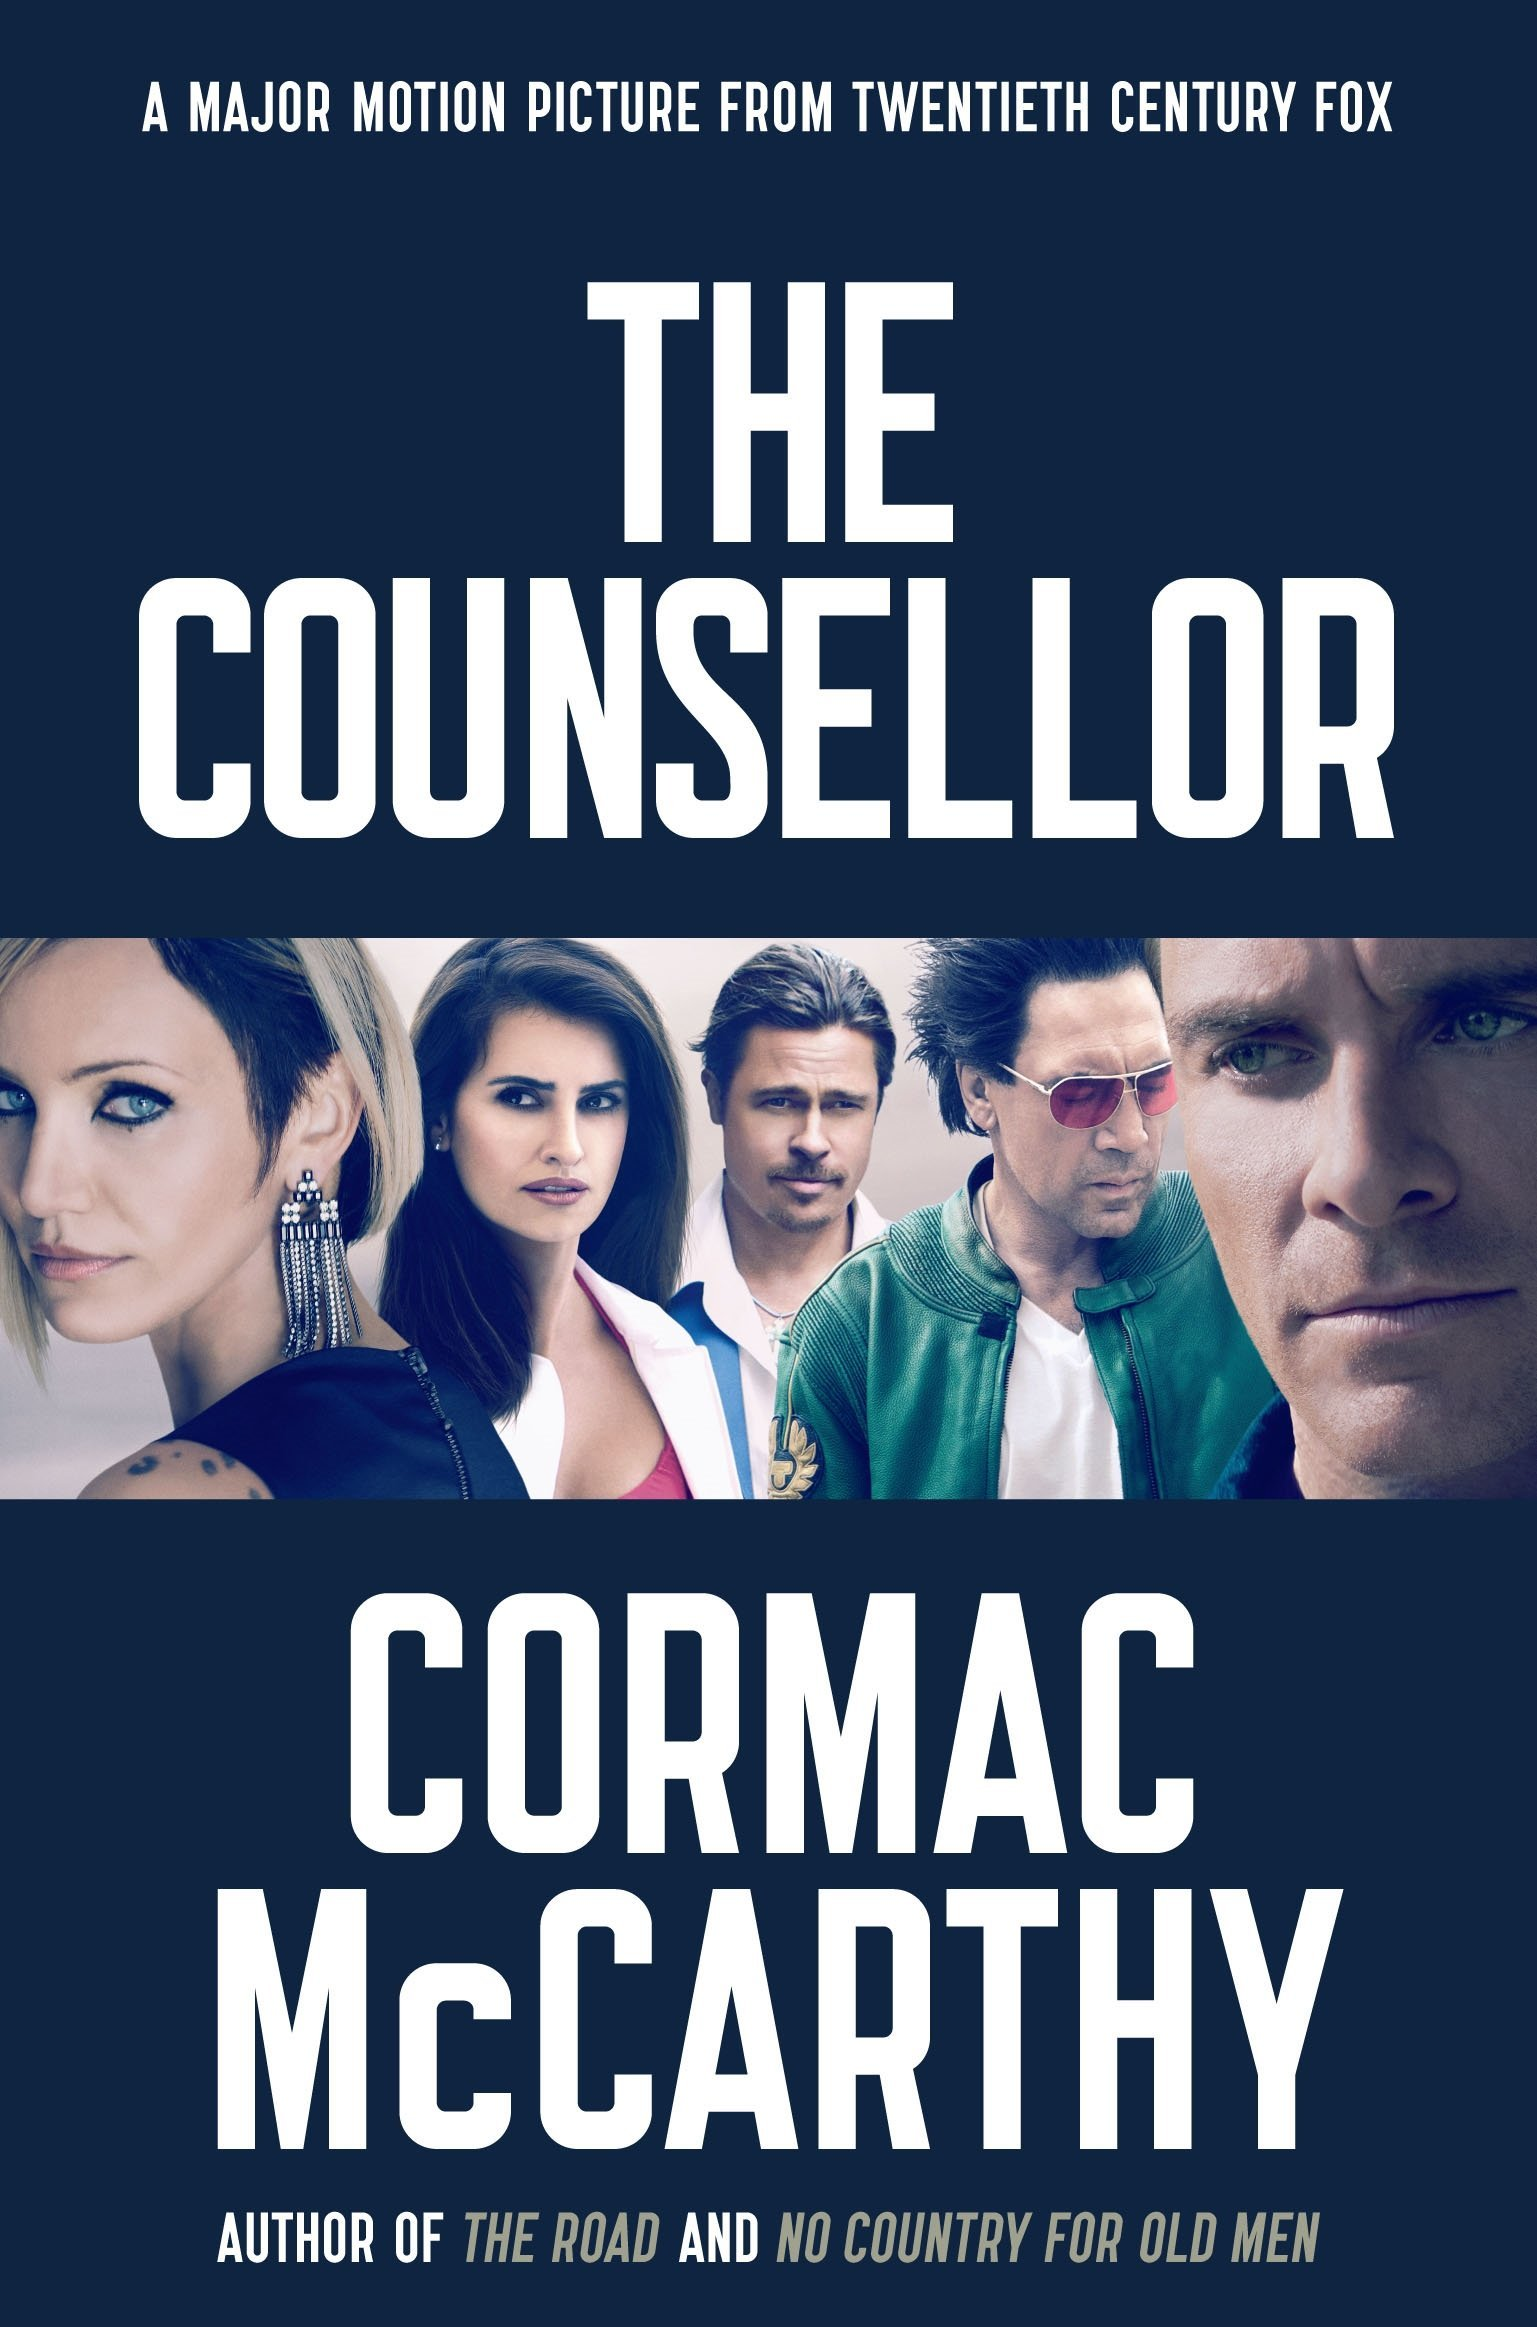 The Counselor 24 Oct 2013 By Cormac Mccarthy